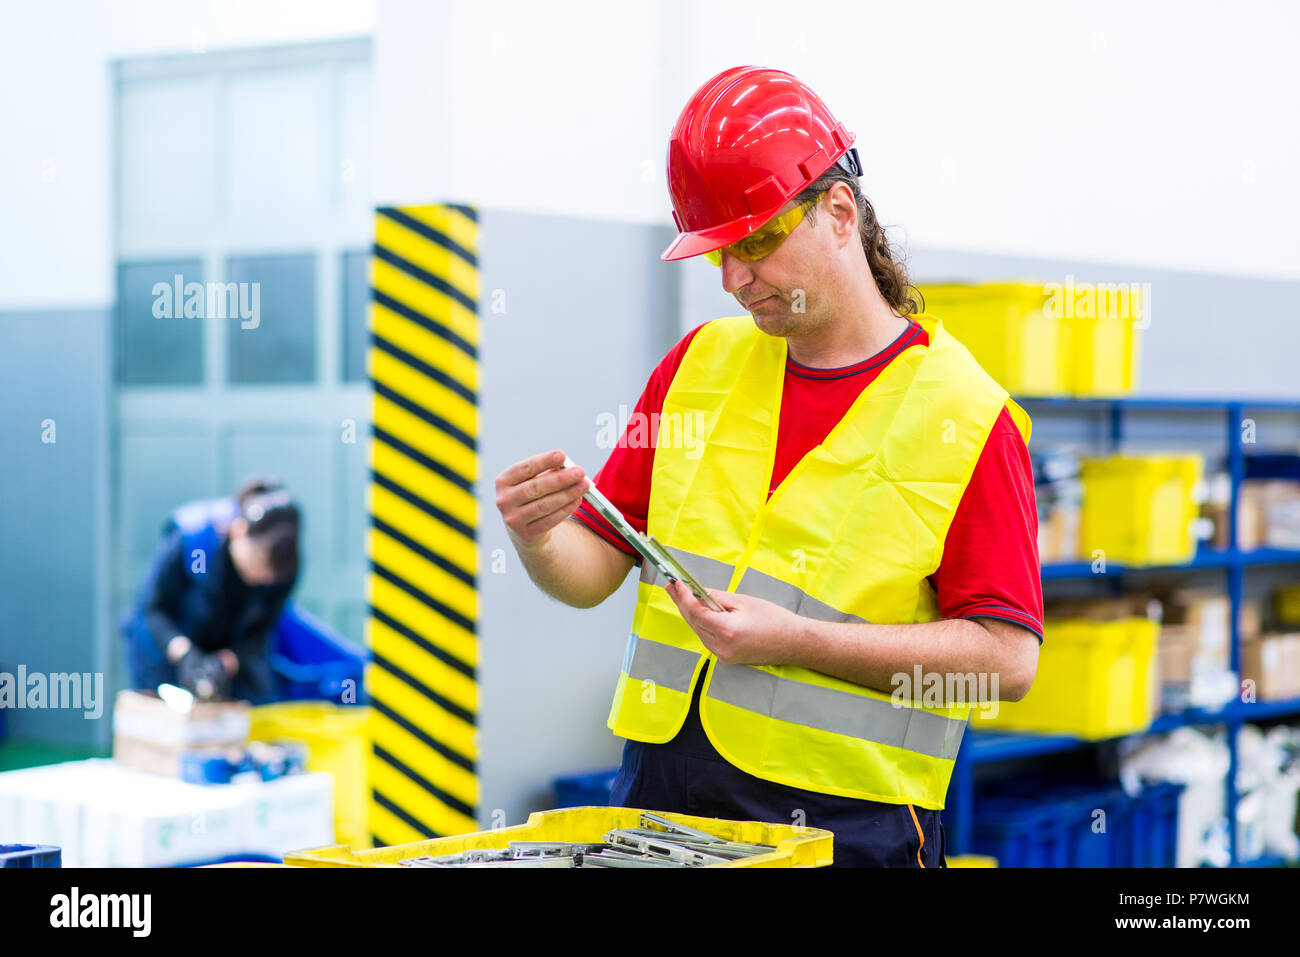 Manager in a factory checking a product from production line. Factory supervisor doing quality control - Stock Image